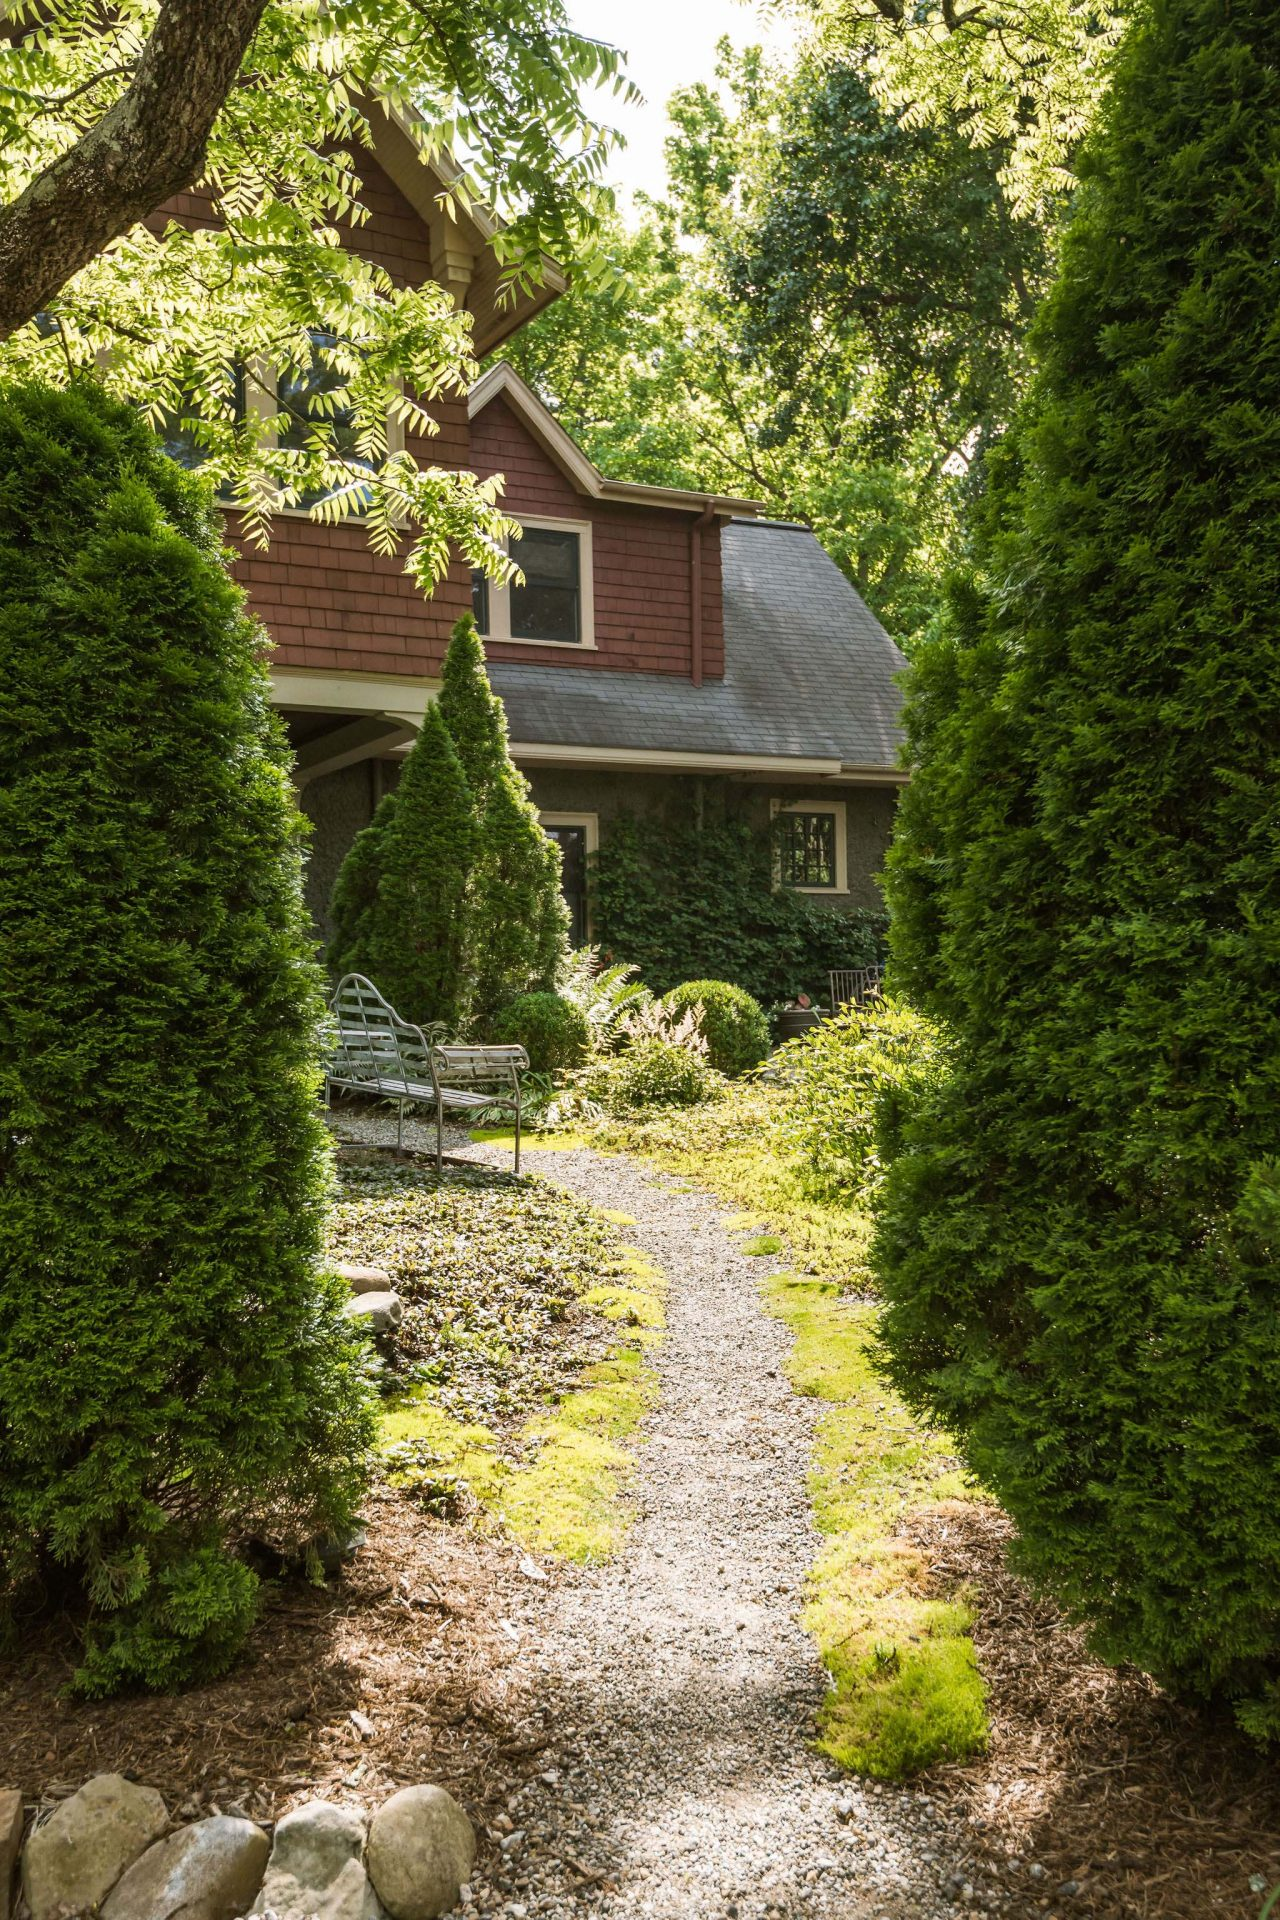 A narrow gravel path leading through the backyard garden to the carriage house.